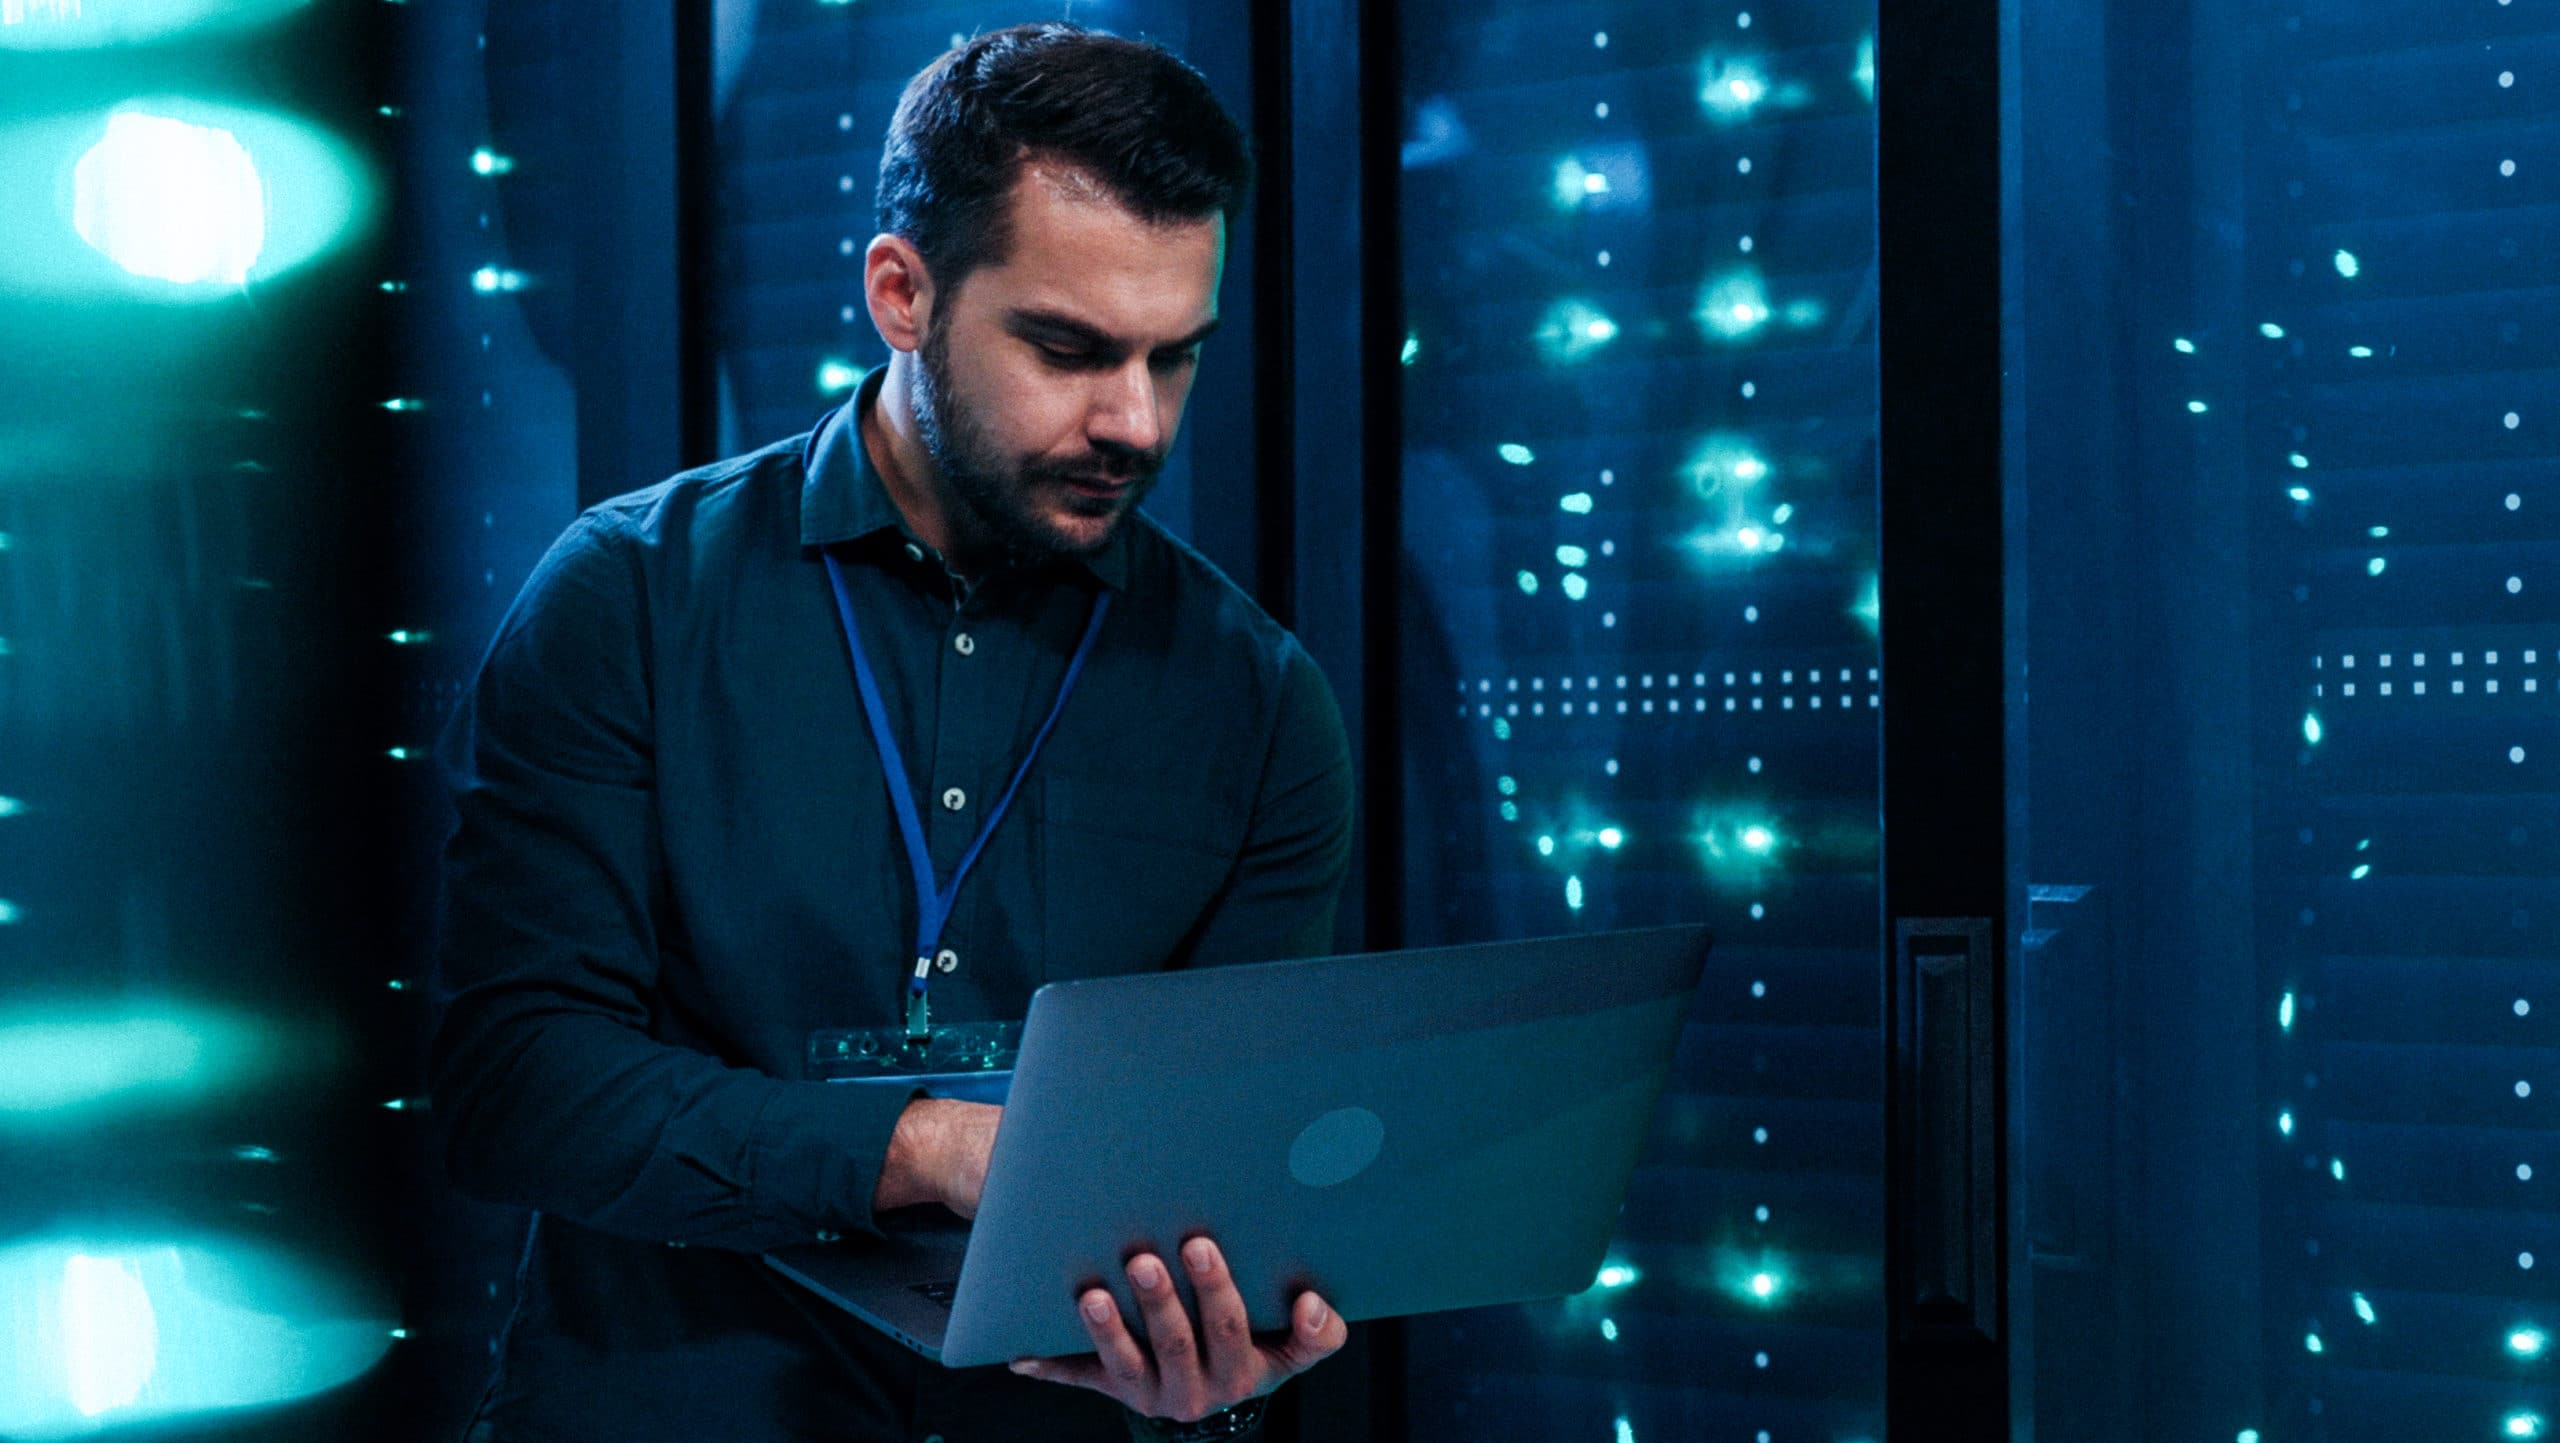 IT professional admin using laptop computer doing data transfer operation with rack server cabinets in digital room of data center. Cyber security.